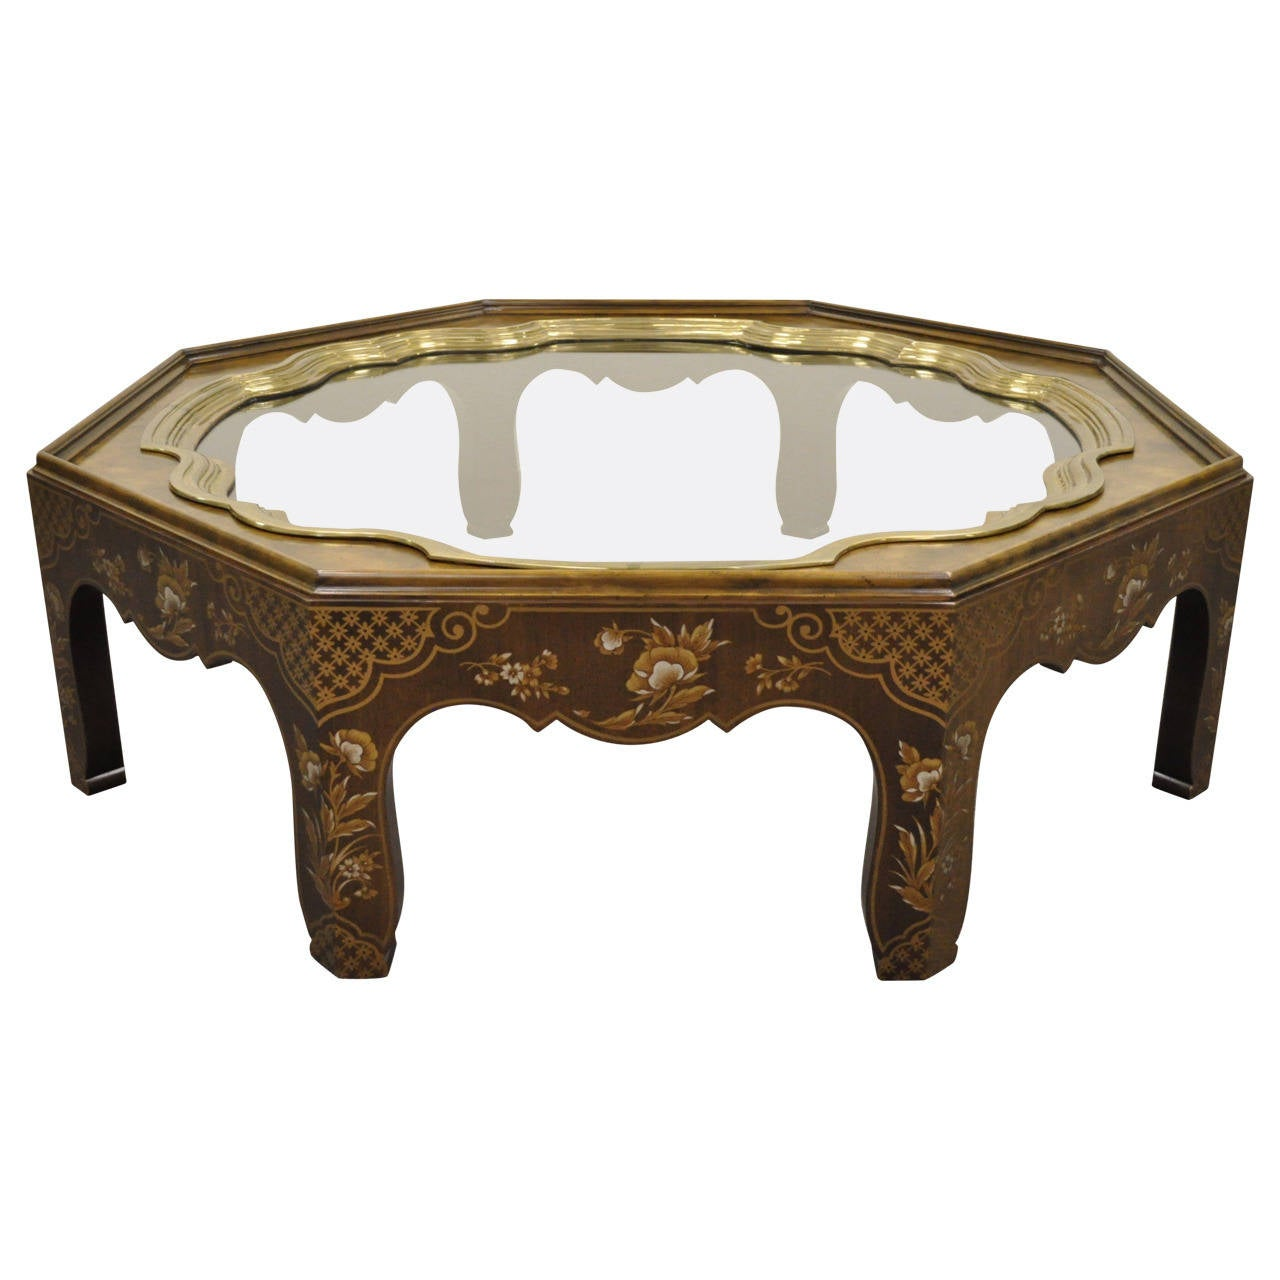 baker furniture co chinoiserie painted brass tray coffee table